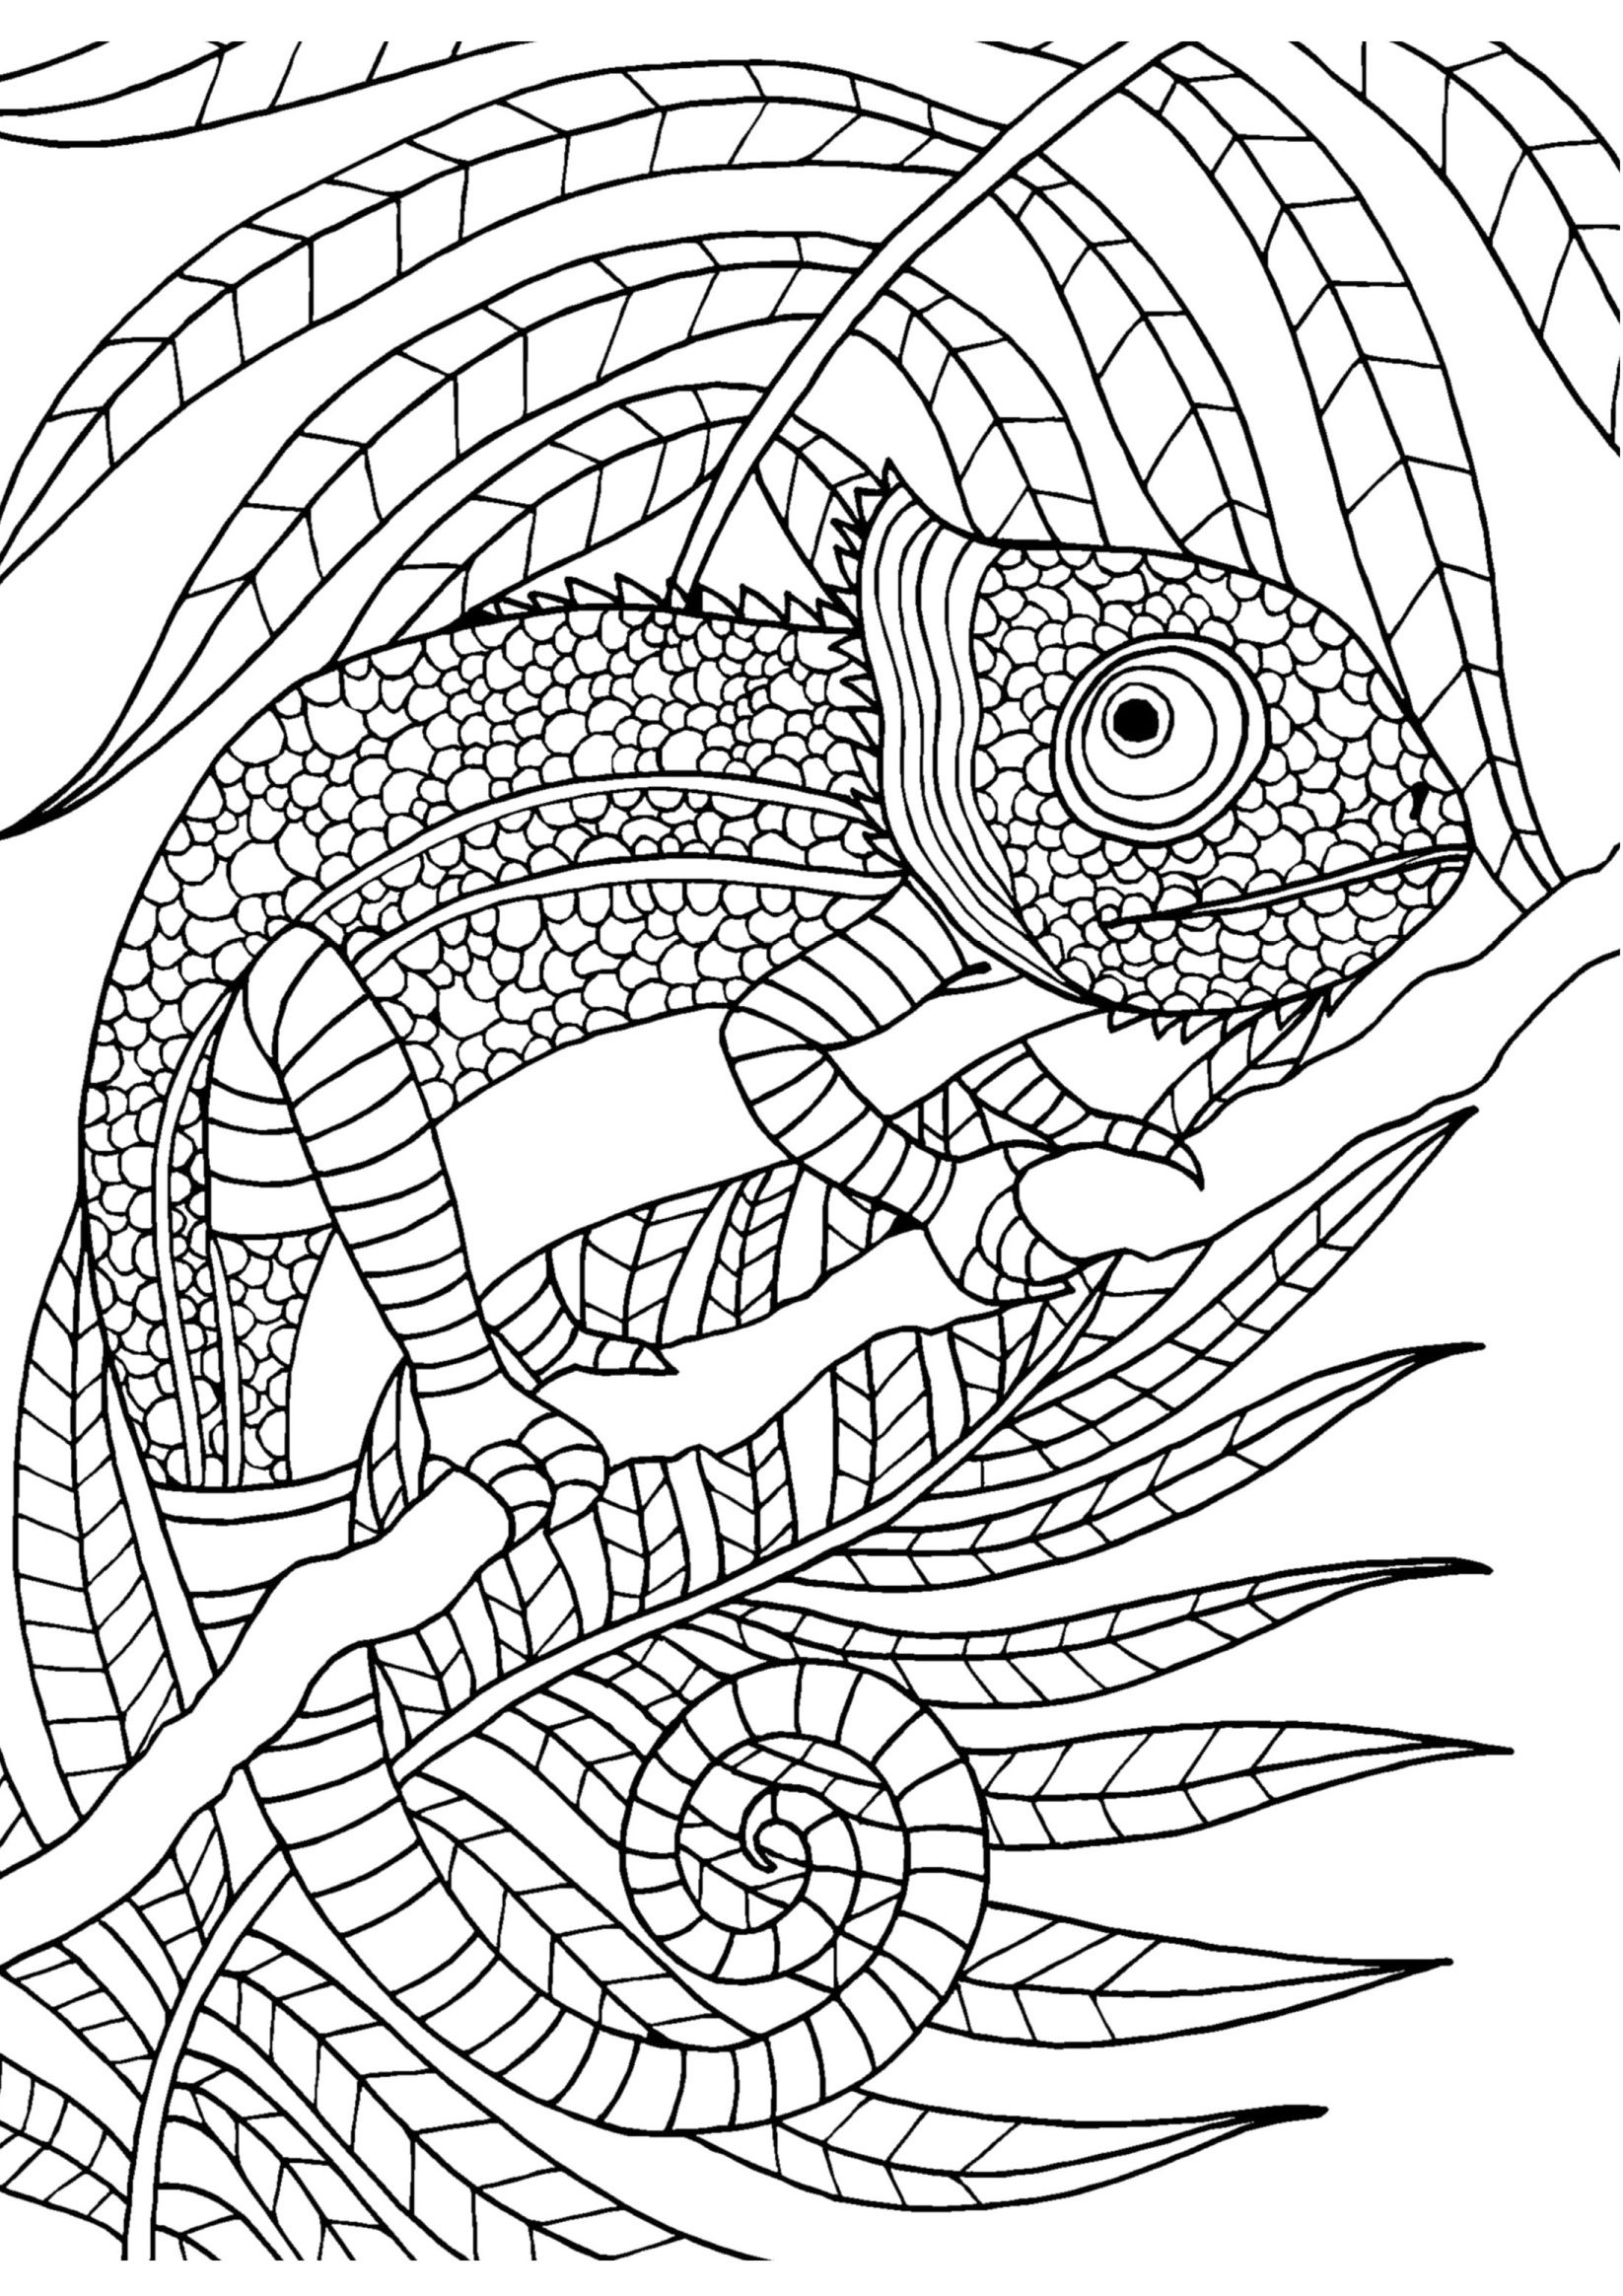 art coloring pages for kids - photo#24